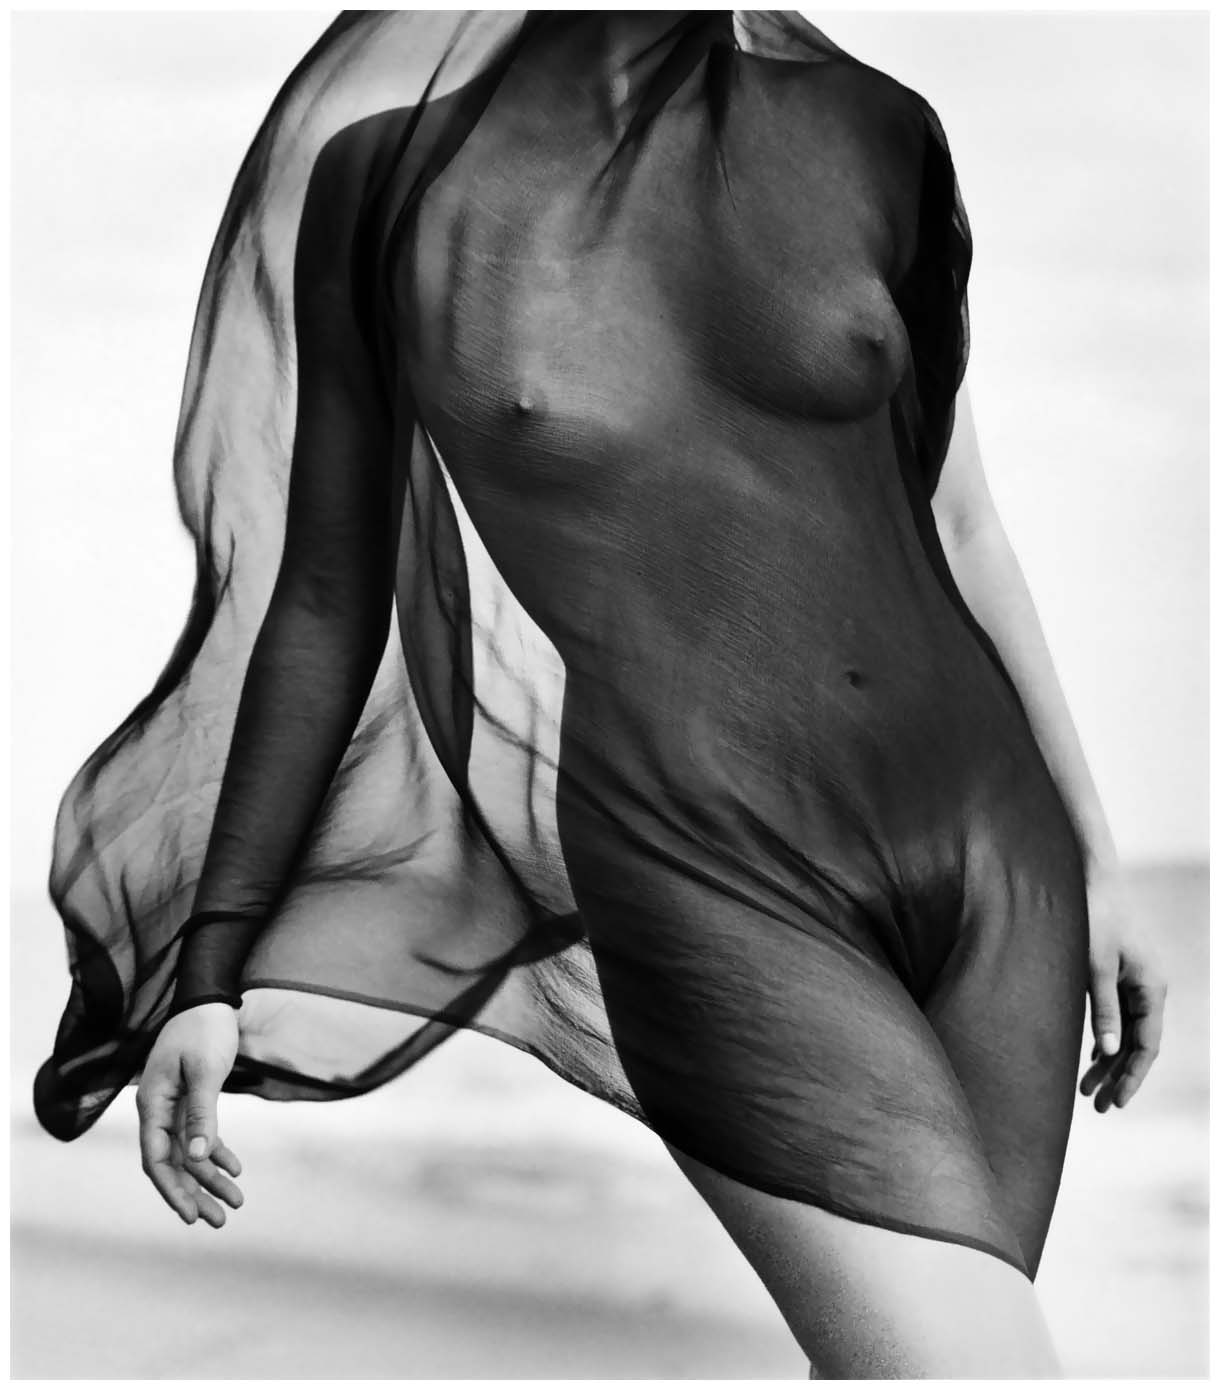 http://2.bp.blogspot.com/-V4qHJFHoKBc/URh8msCE_HI/AAAAAAAAHY8/dK945KDRAiM/s1600/female-torso-with-veil-1984-photo-herb-ritts1.jpg